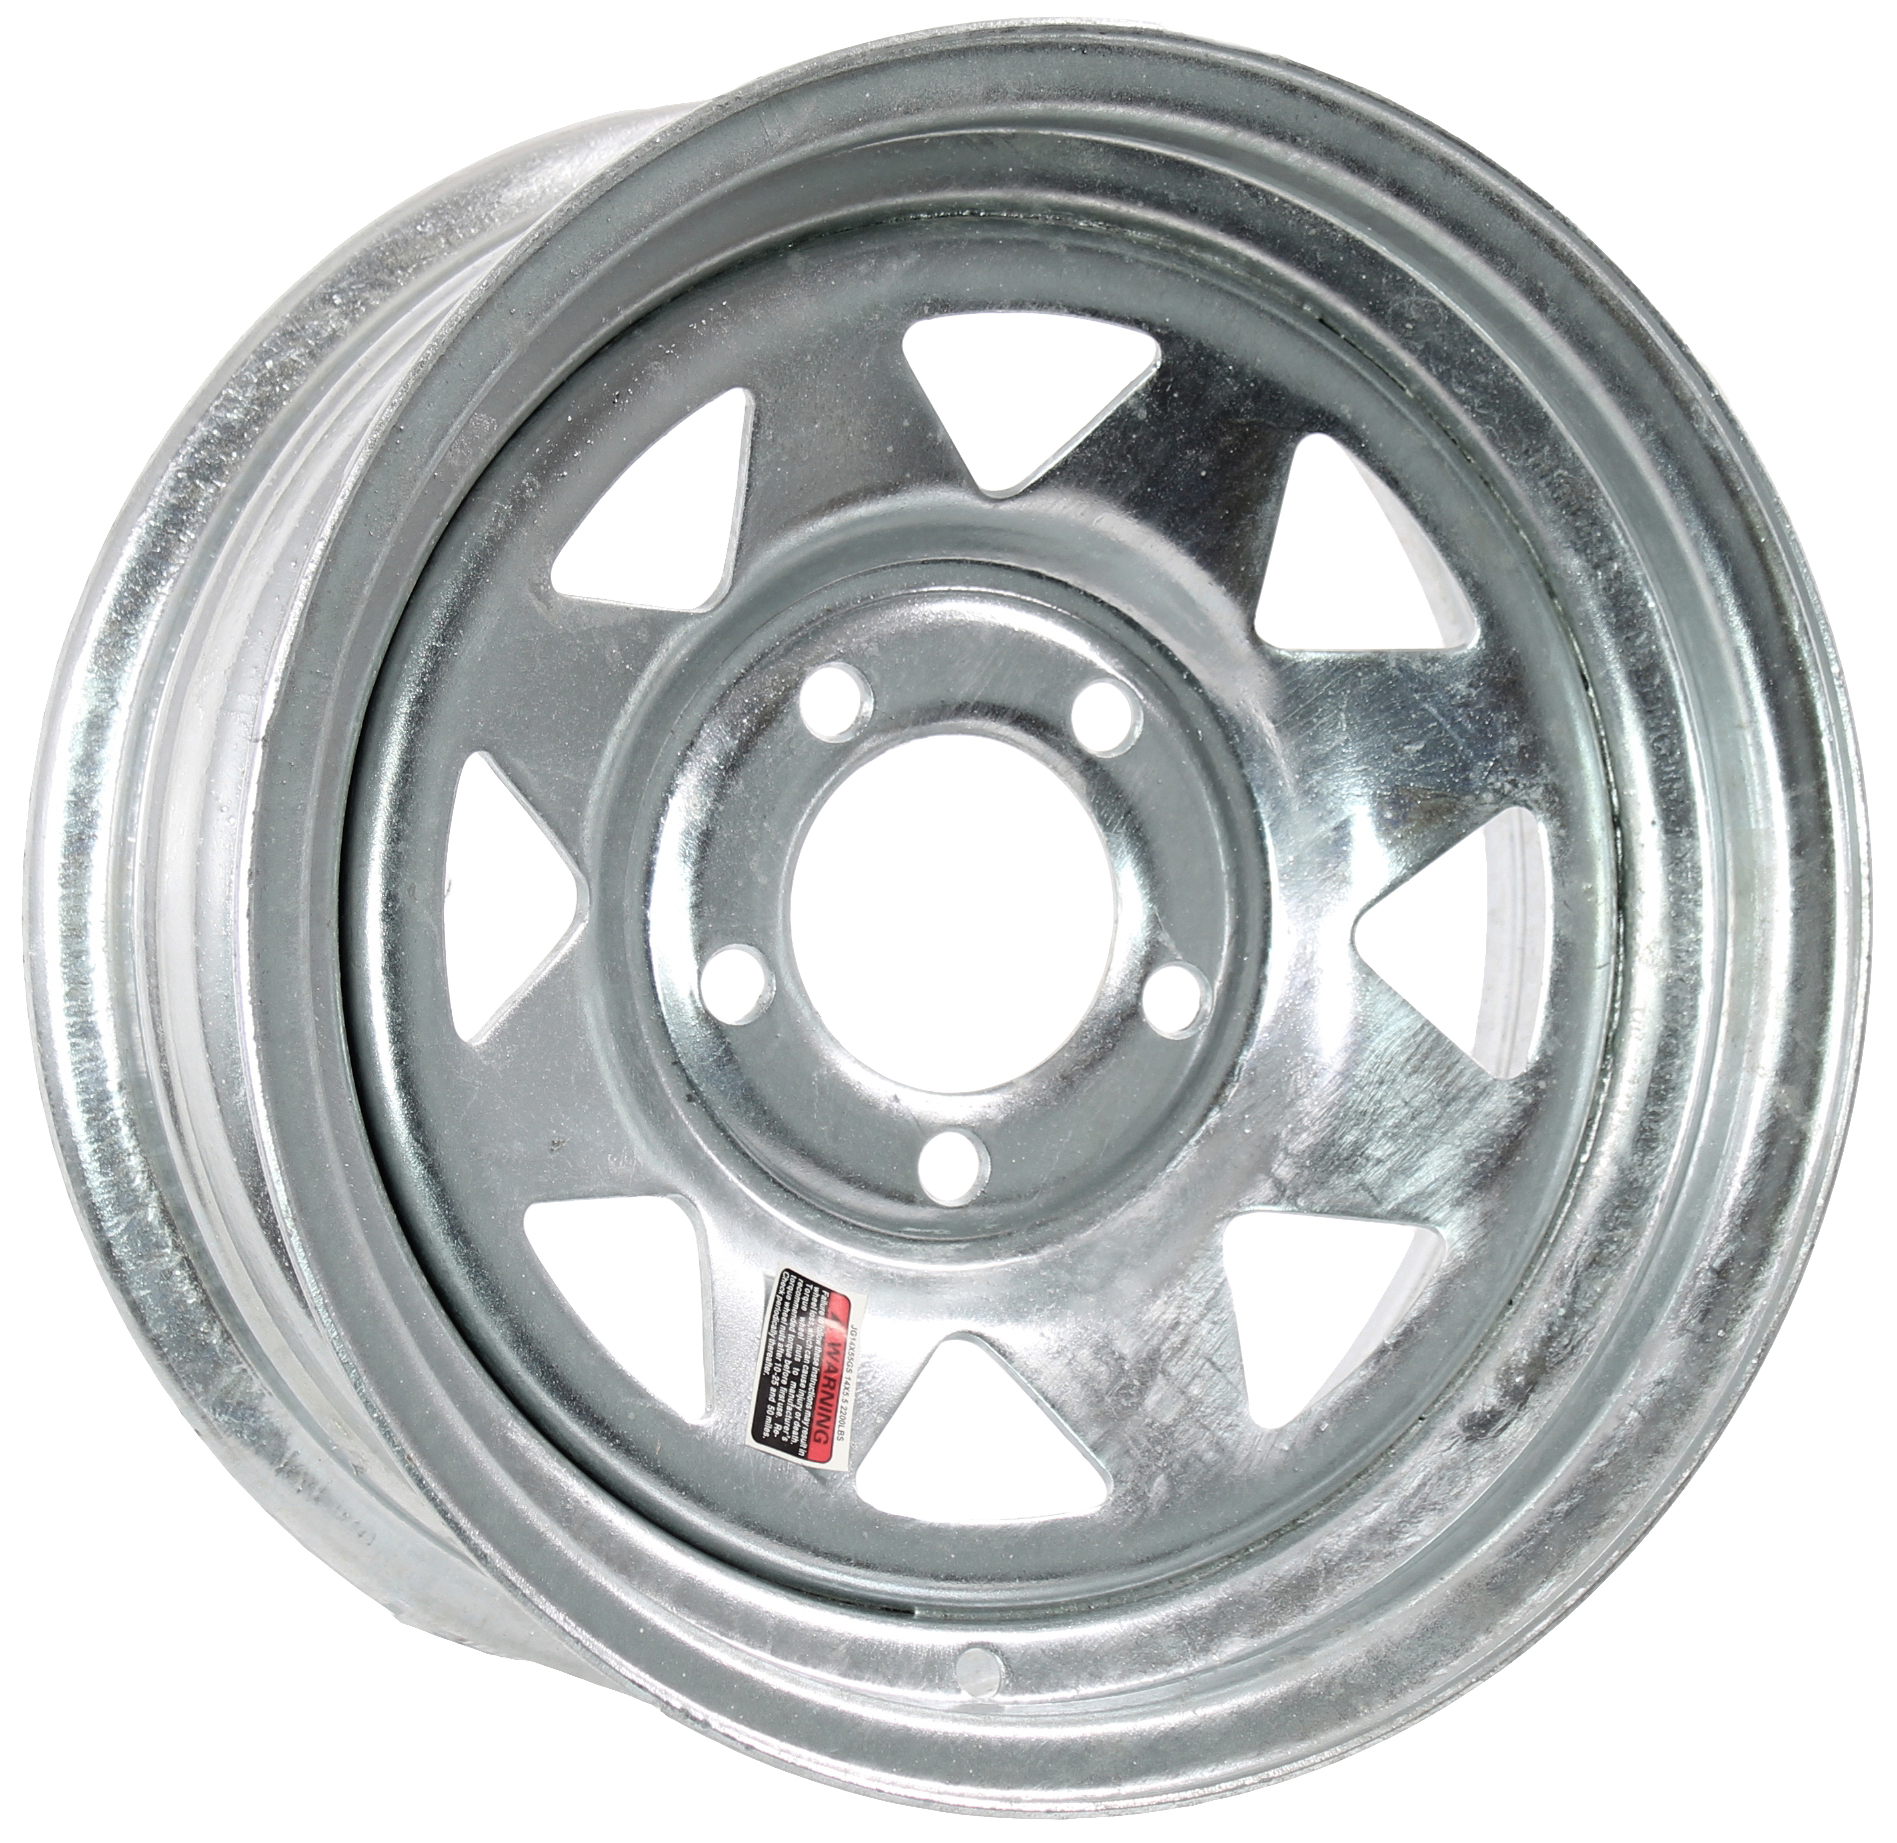 14x5.5 5-Lug Galvanized Spoke Steel Trailer Wheel Image